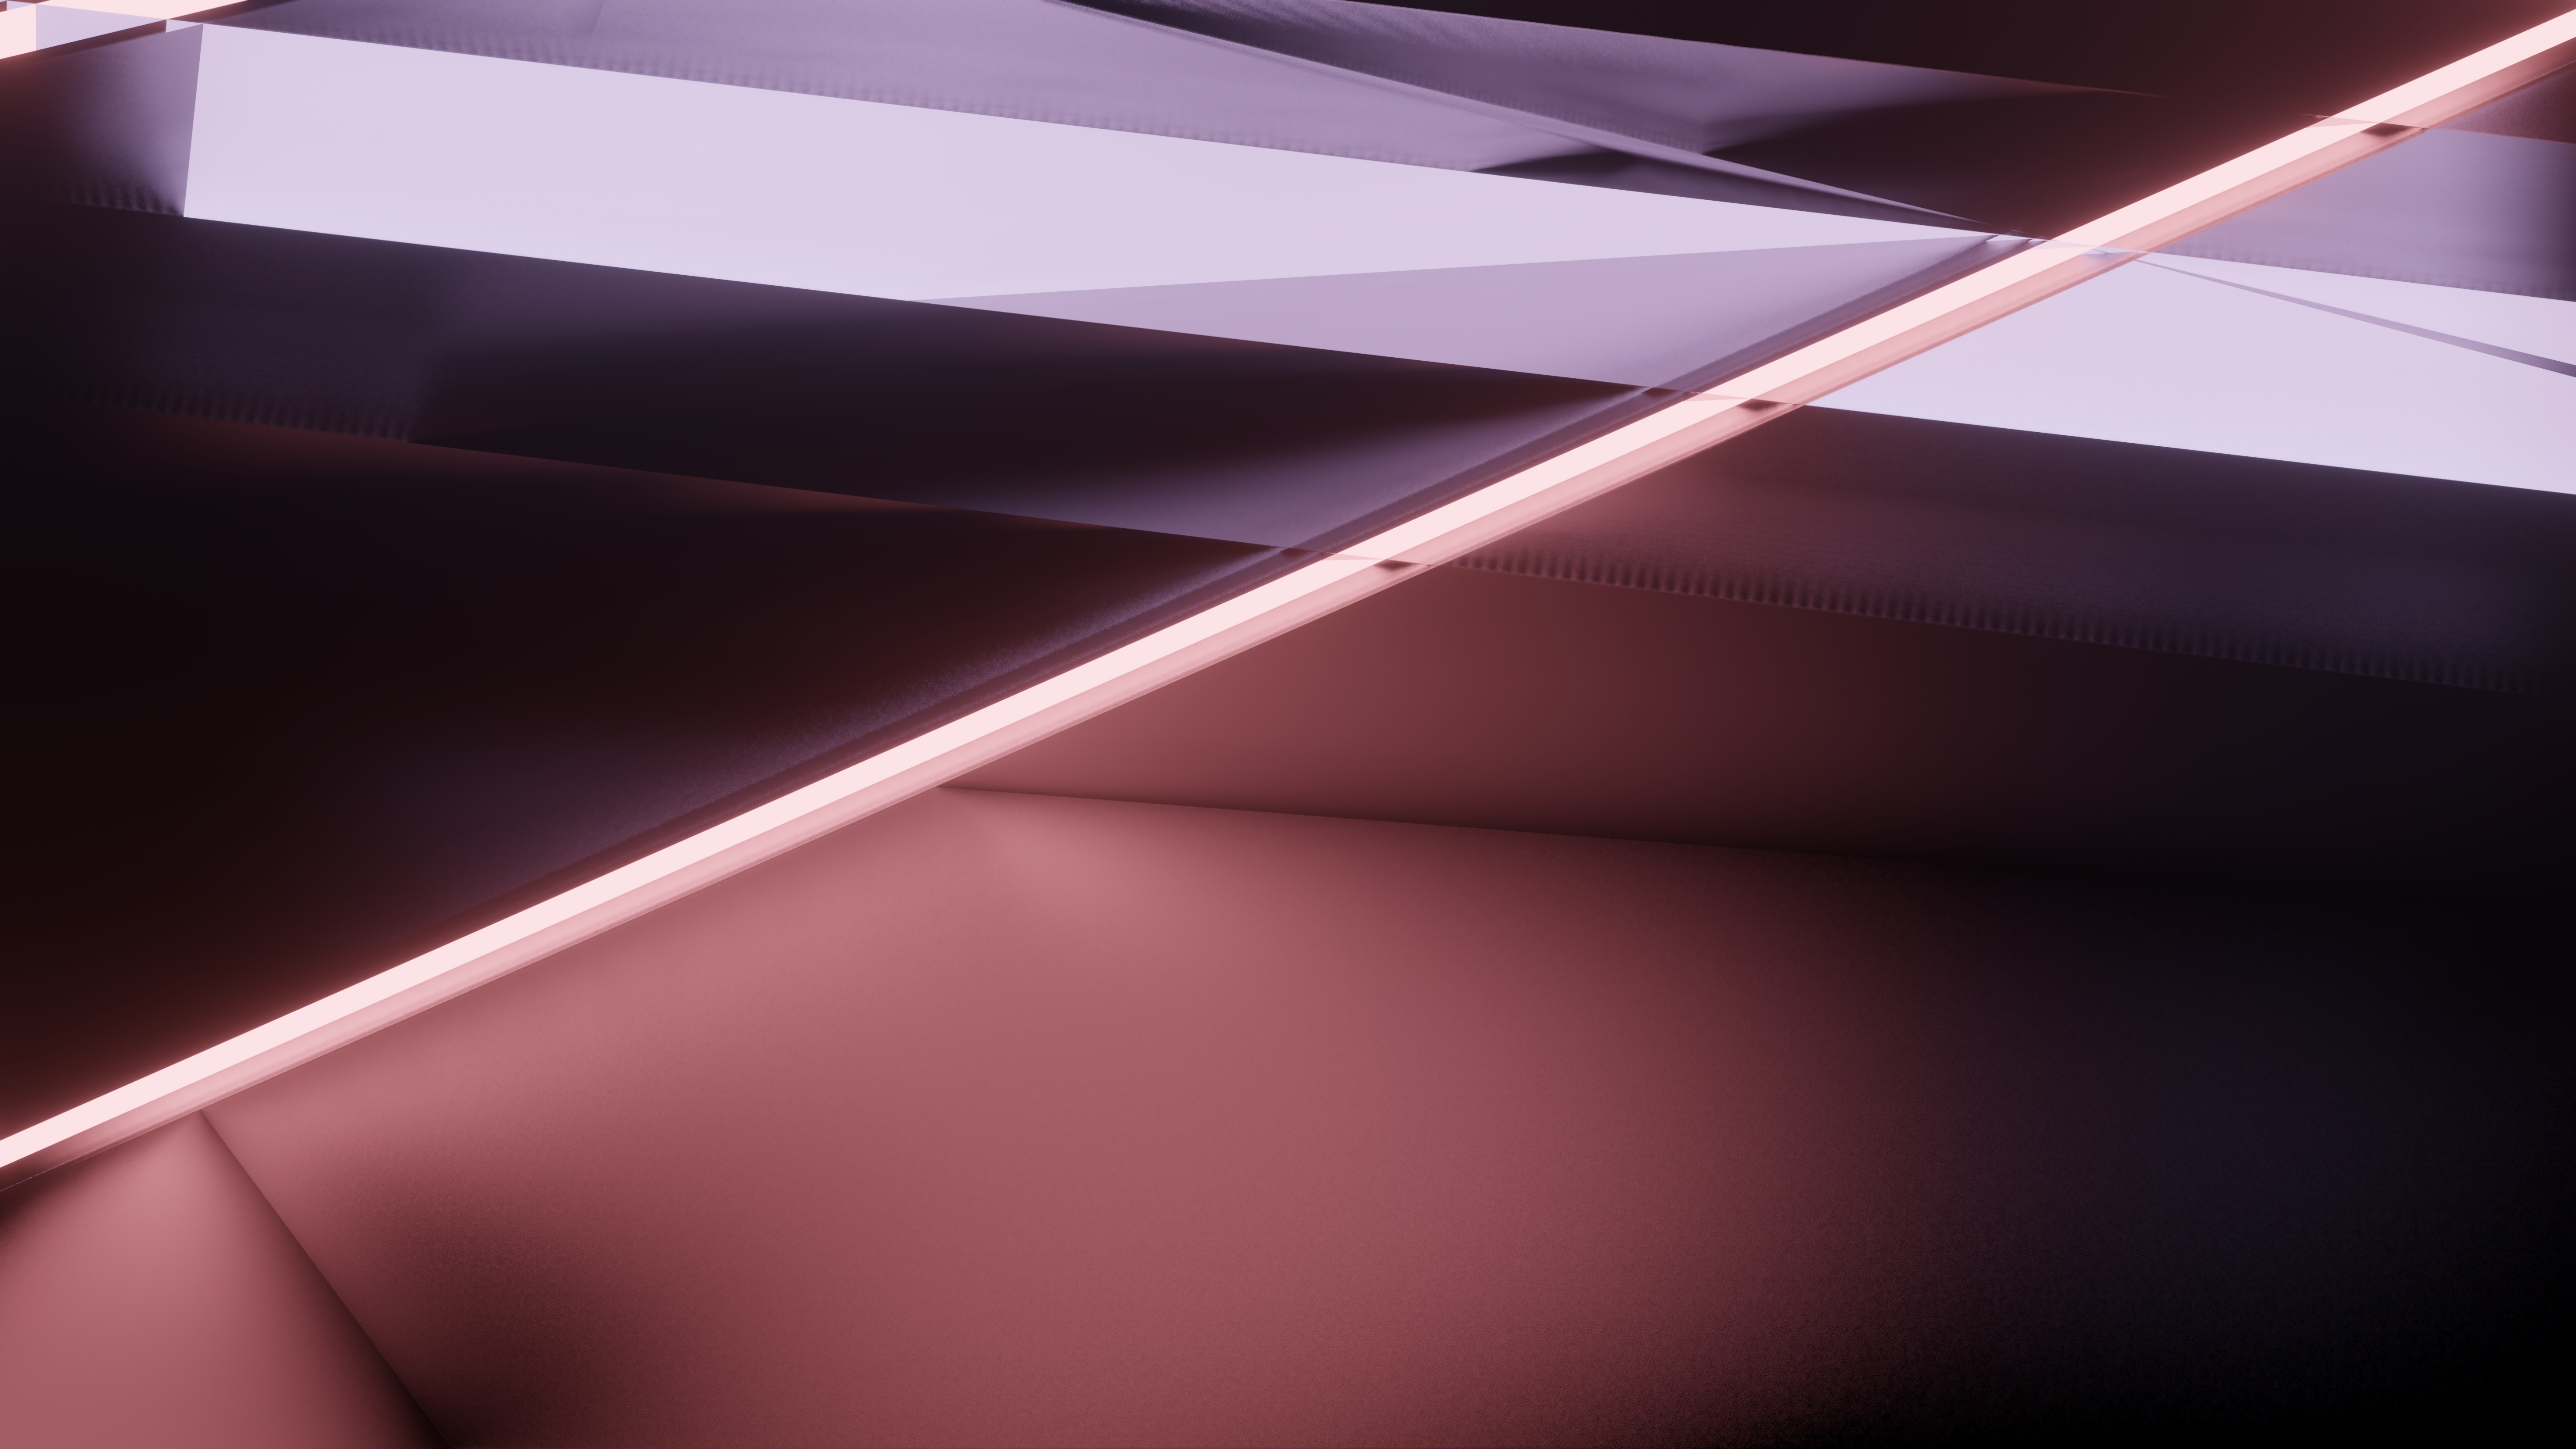 Abstract Lines Shapes wallpaper